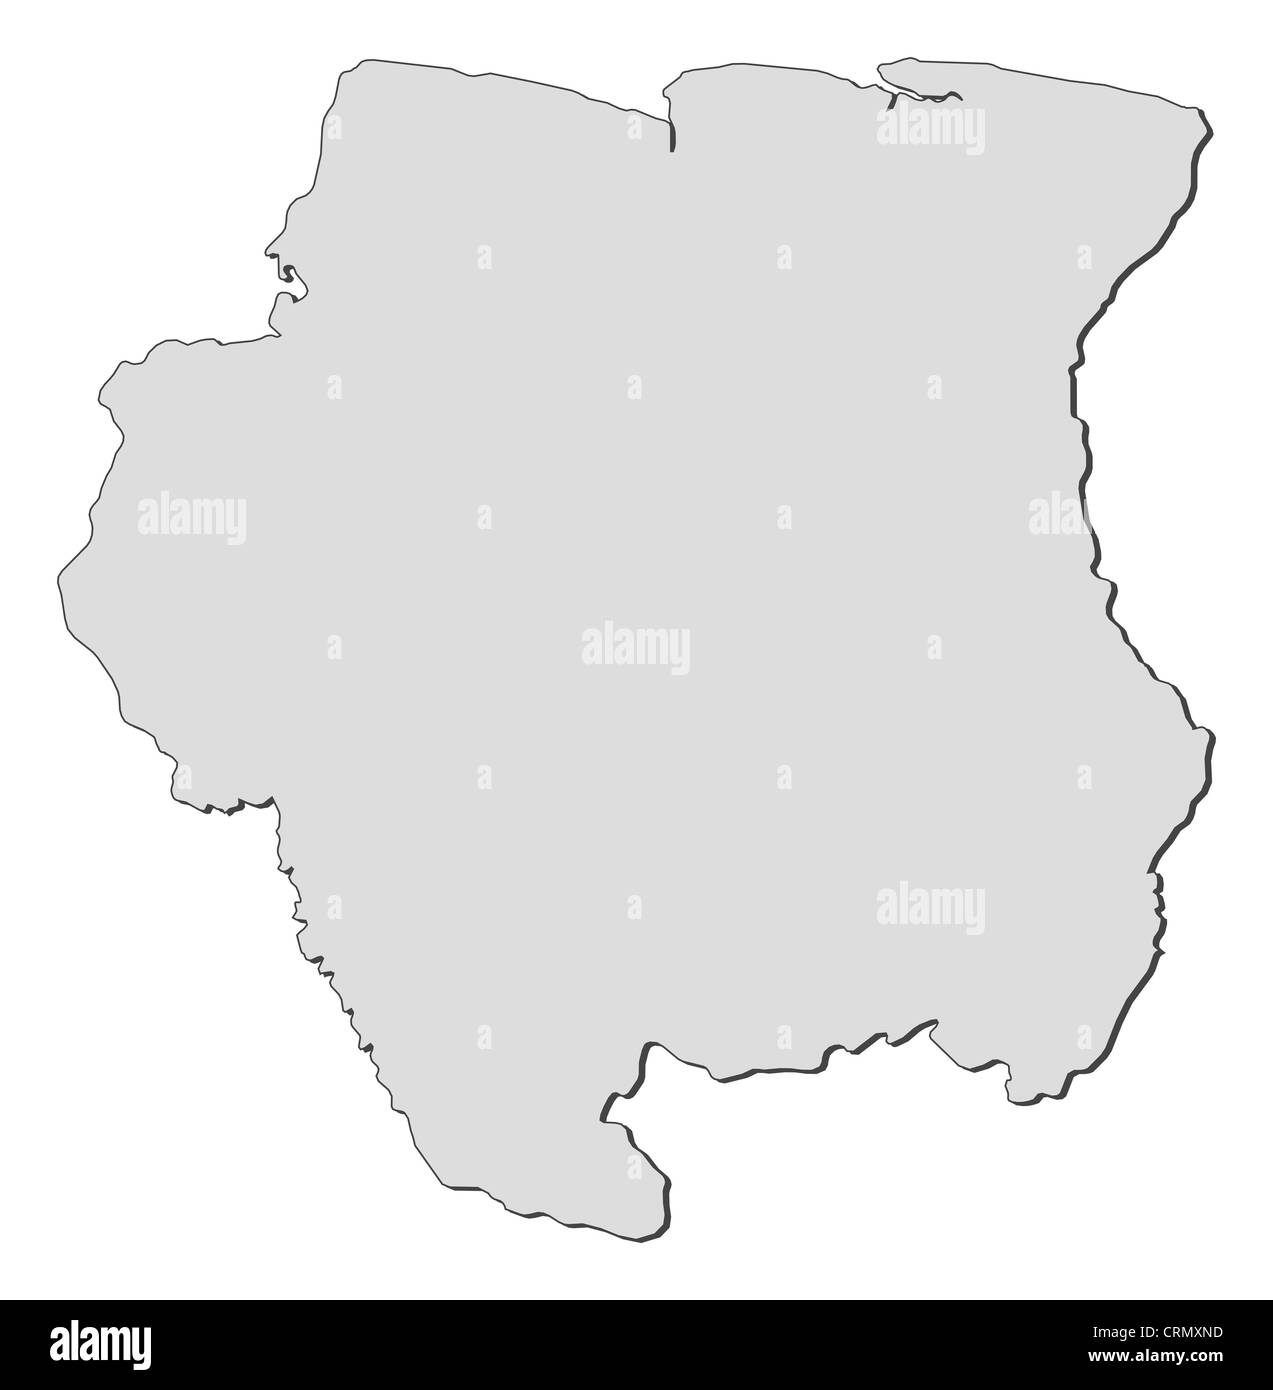 Political map of Suriname with the several districts. - Stock Image